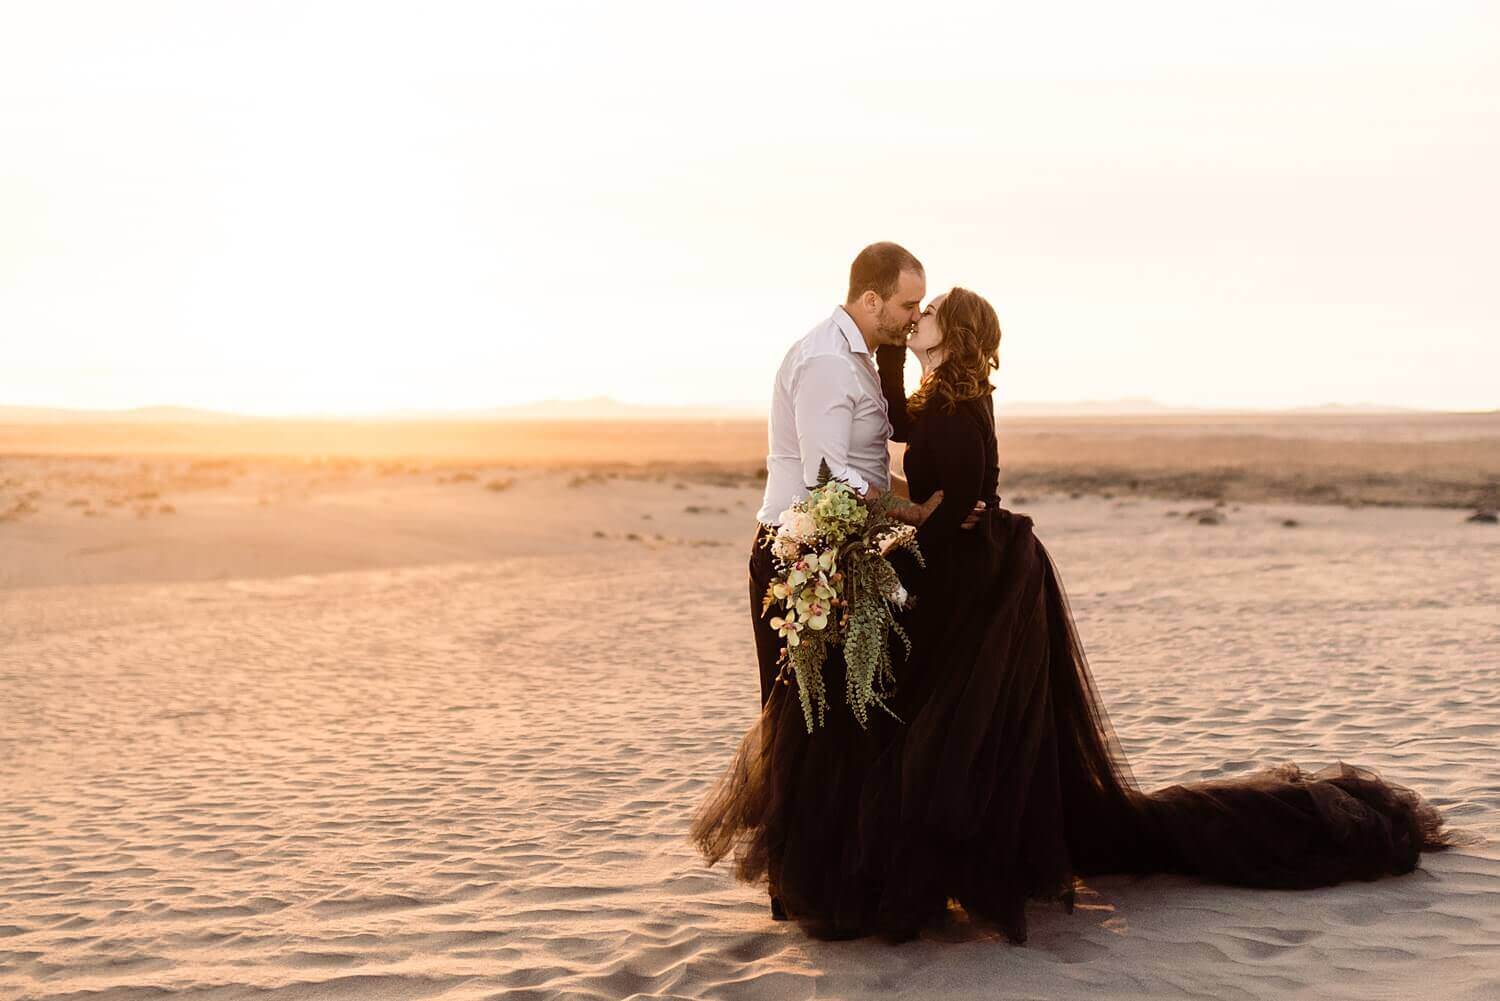 Adventure Elopement Photographer, Christmas Valley Sand Dunes, Adventure Elopement Photography, Oregon, Pacific Northwest, Desert elopement, black wedding dress